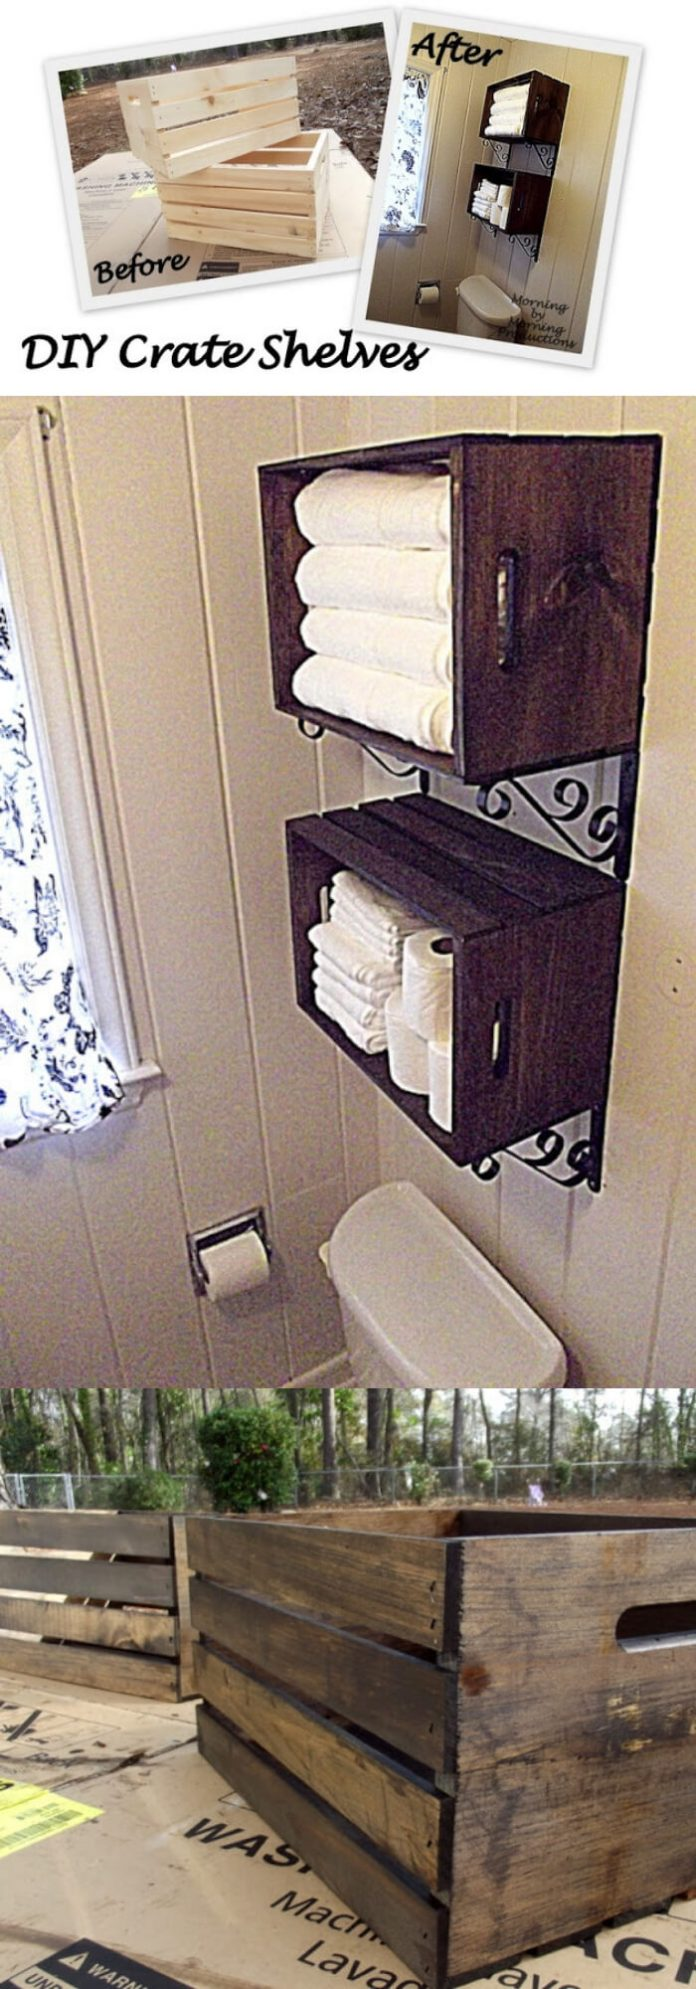 DIY Crate Bathroom Shelf | Best DIY Wood Crate Projects & Ideas